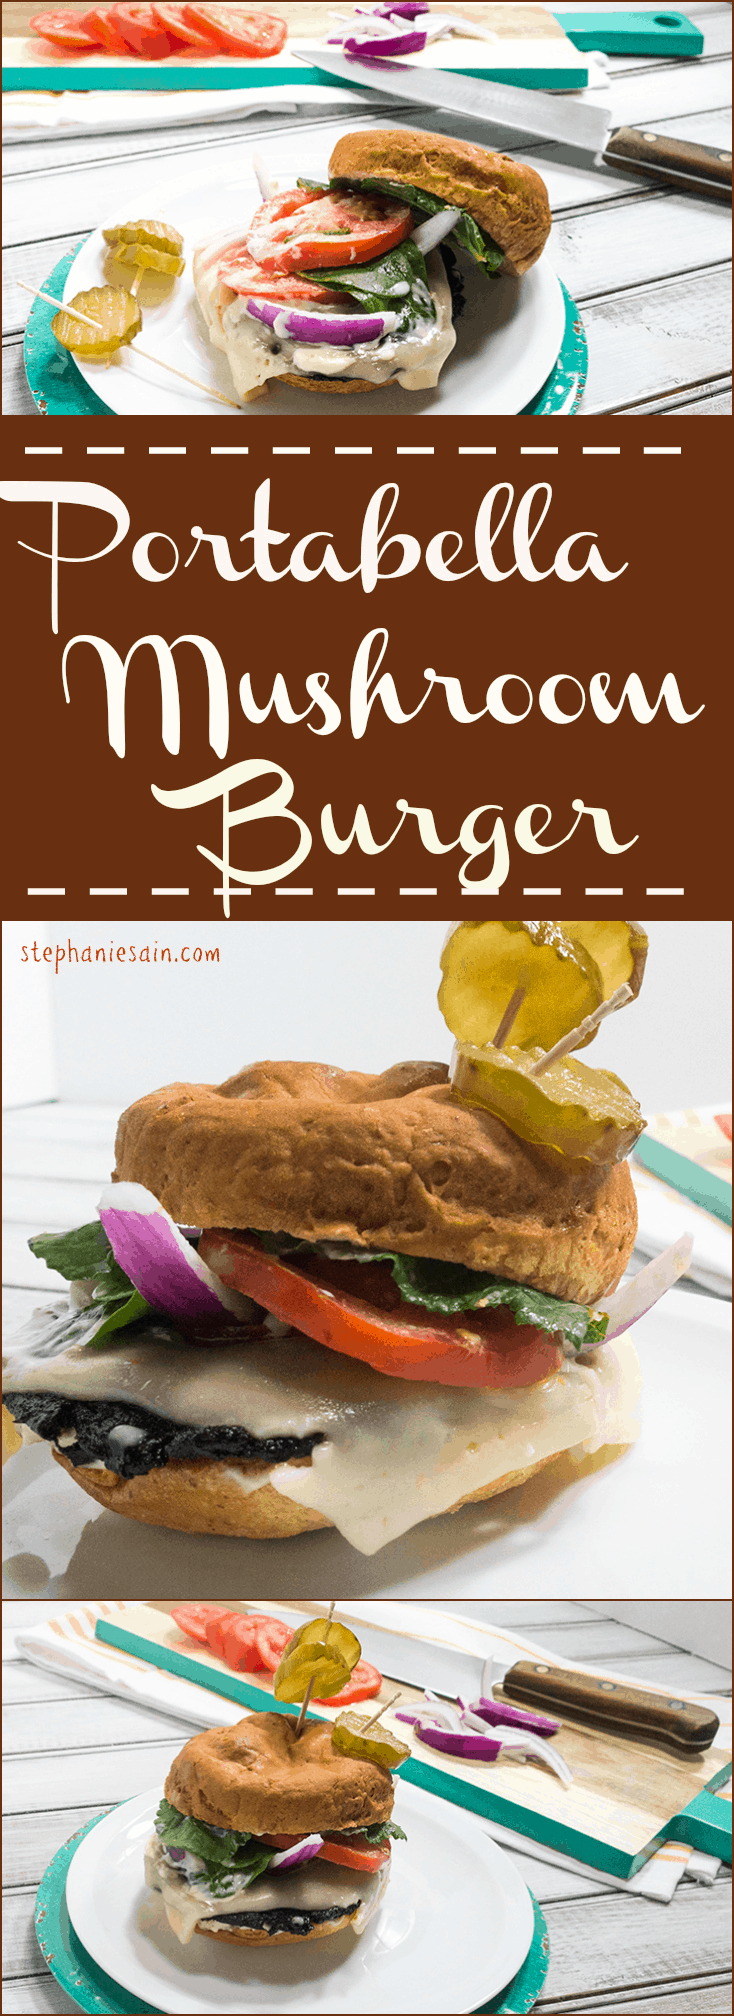 Portabella Mushroom Burger is a healthier way to switch up burger night. Vegetarian and Gluten free. Also Vegan if not topped with cheese.